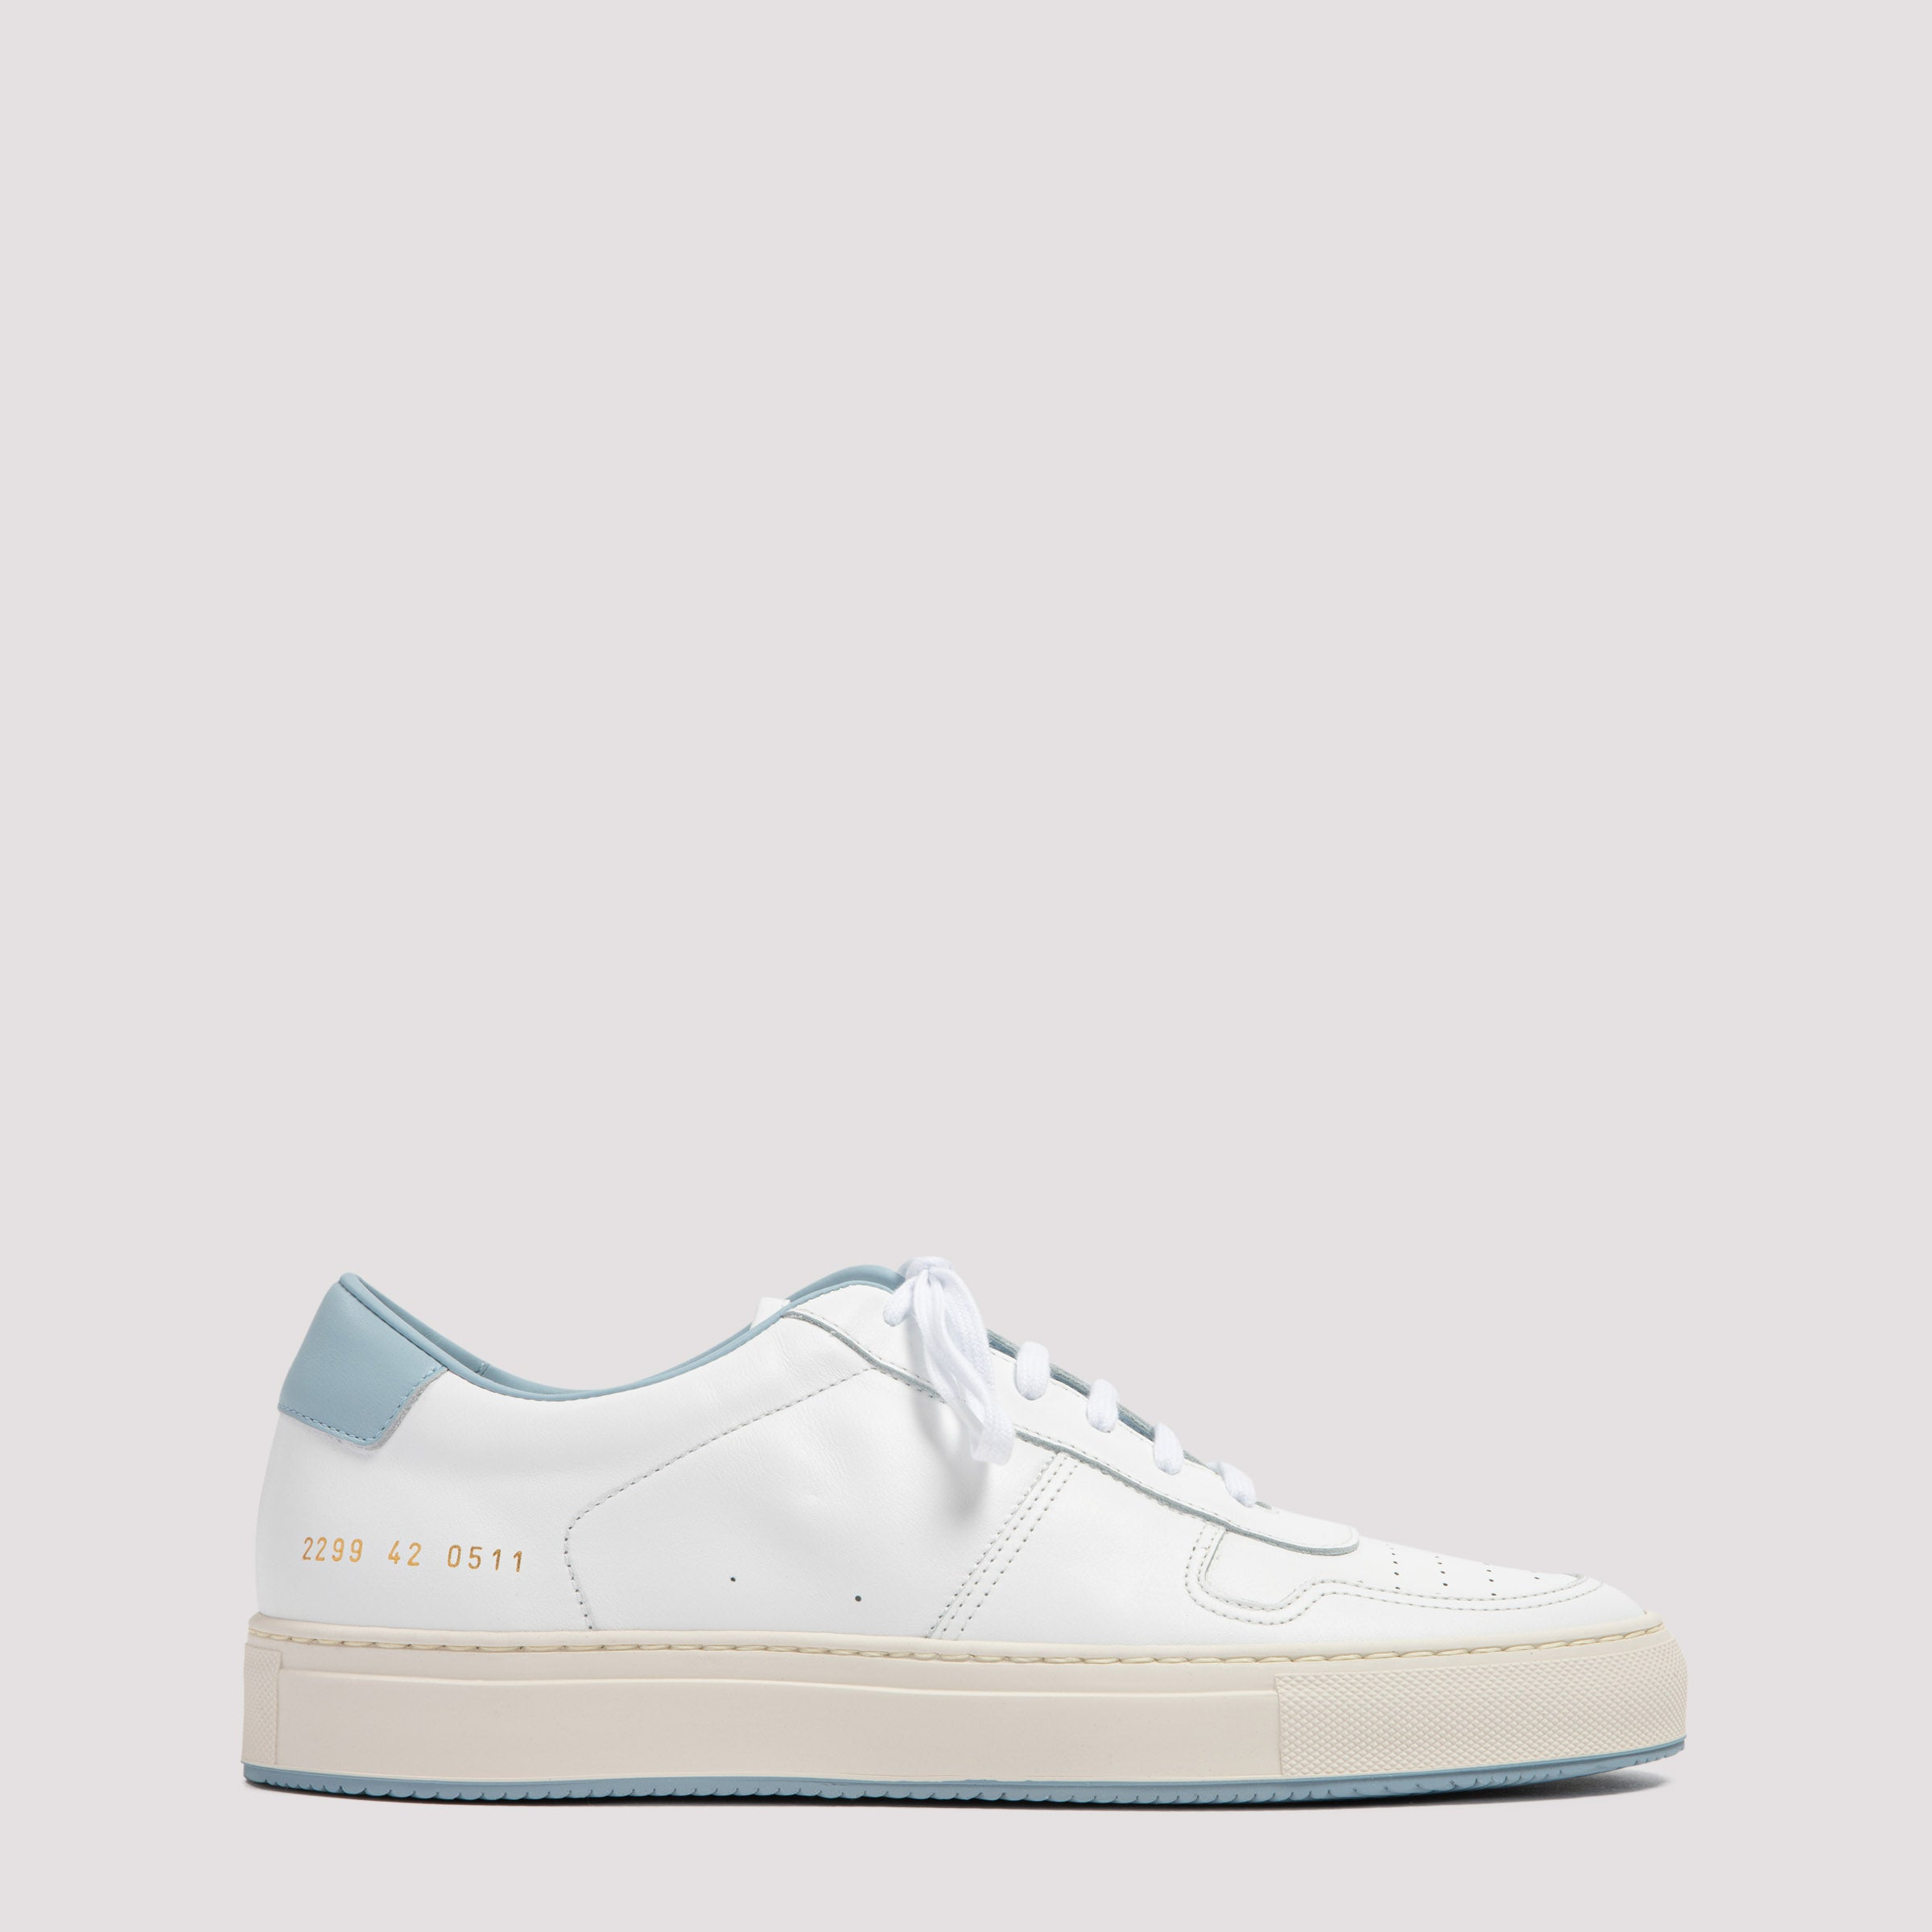 Common Projects Leathers COMMON PROJECTS BBALL 90 SNEAKERS